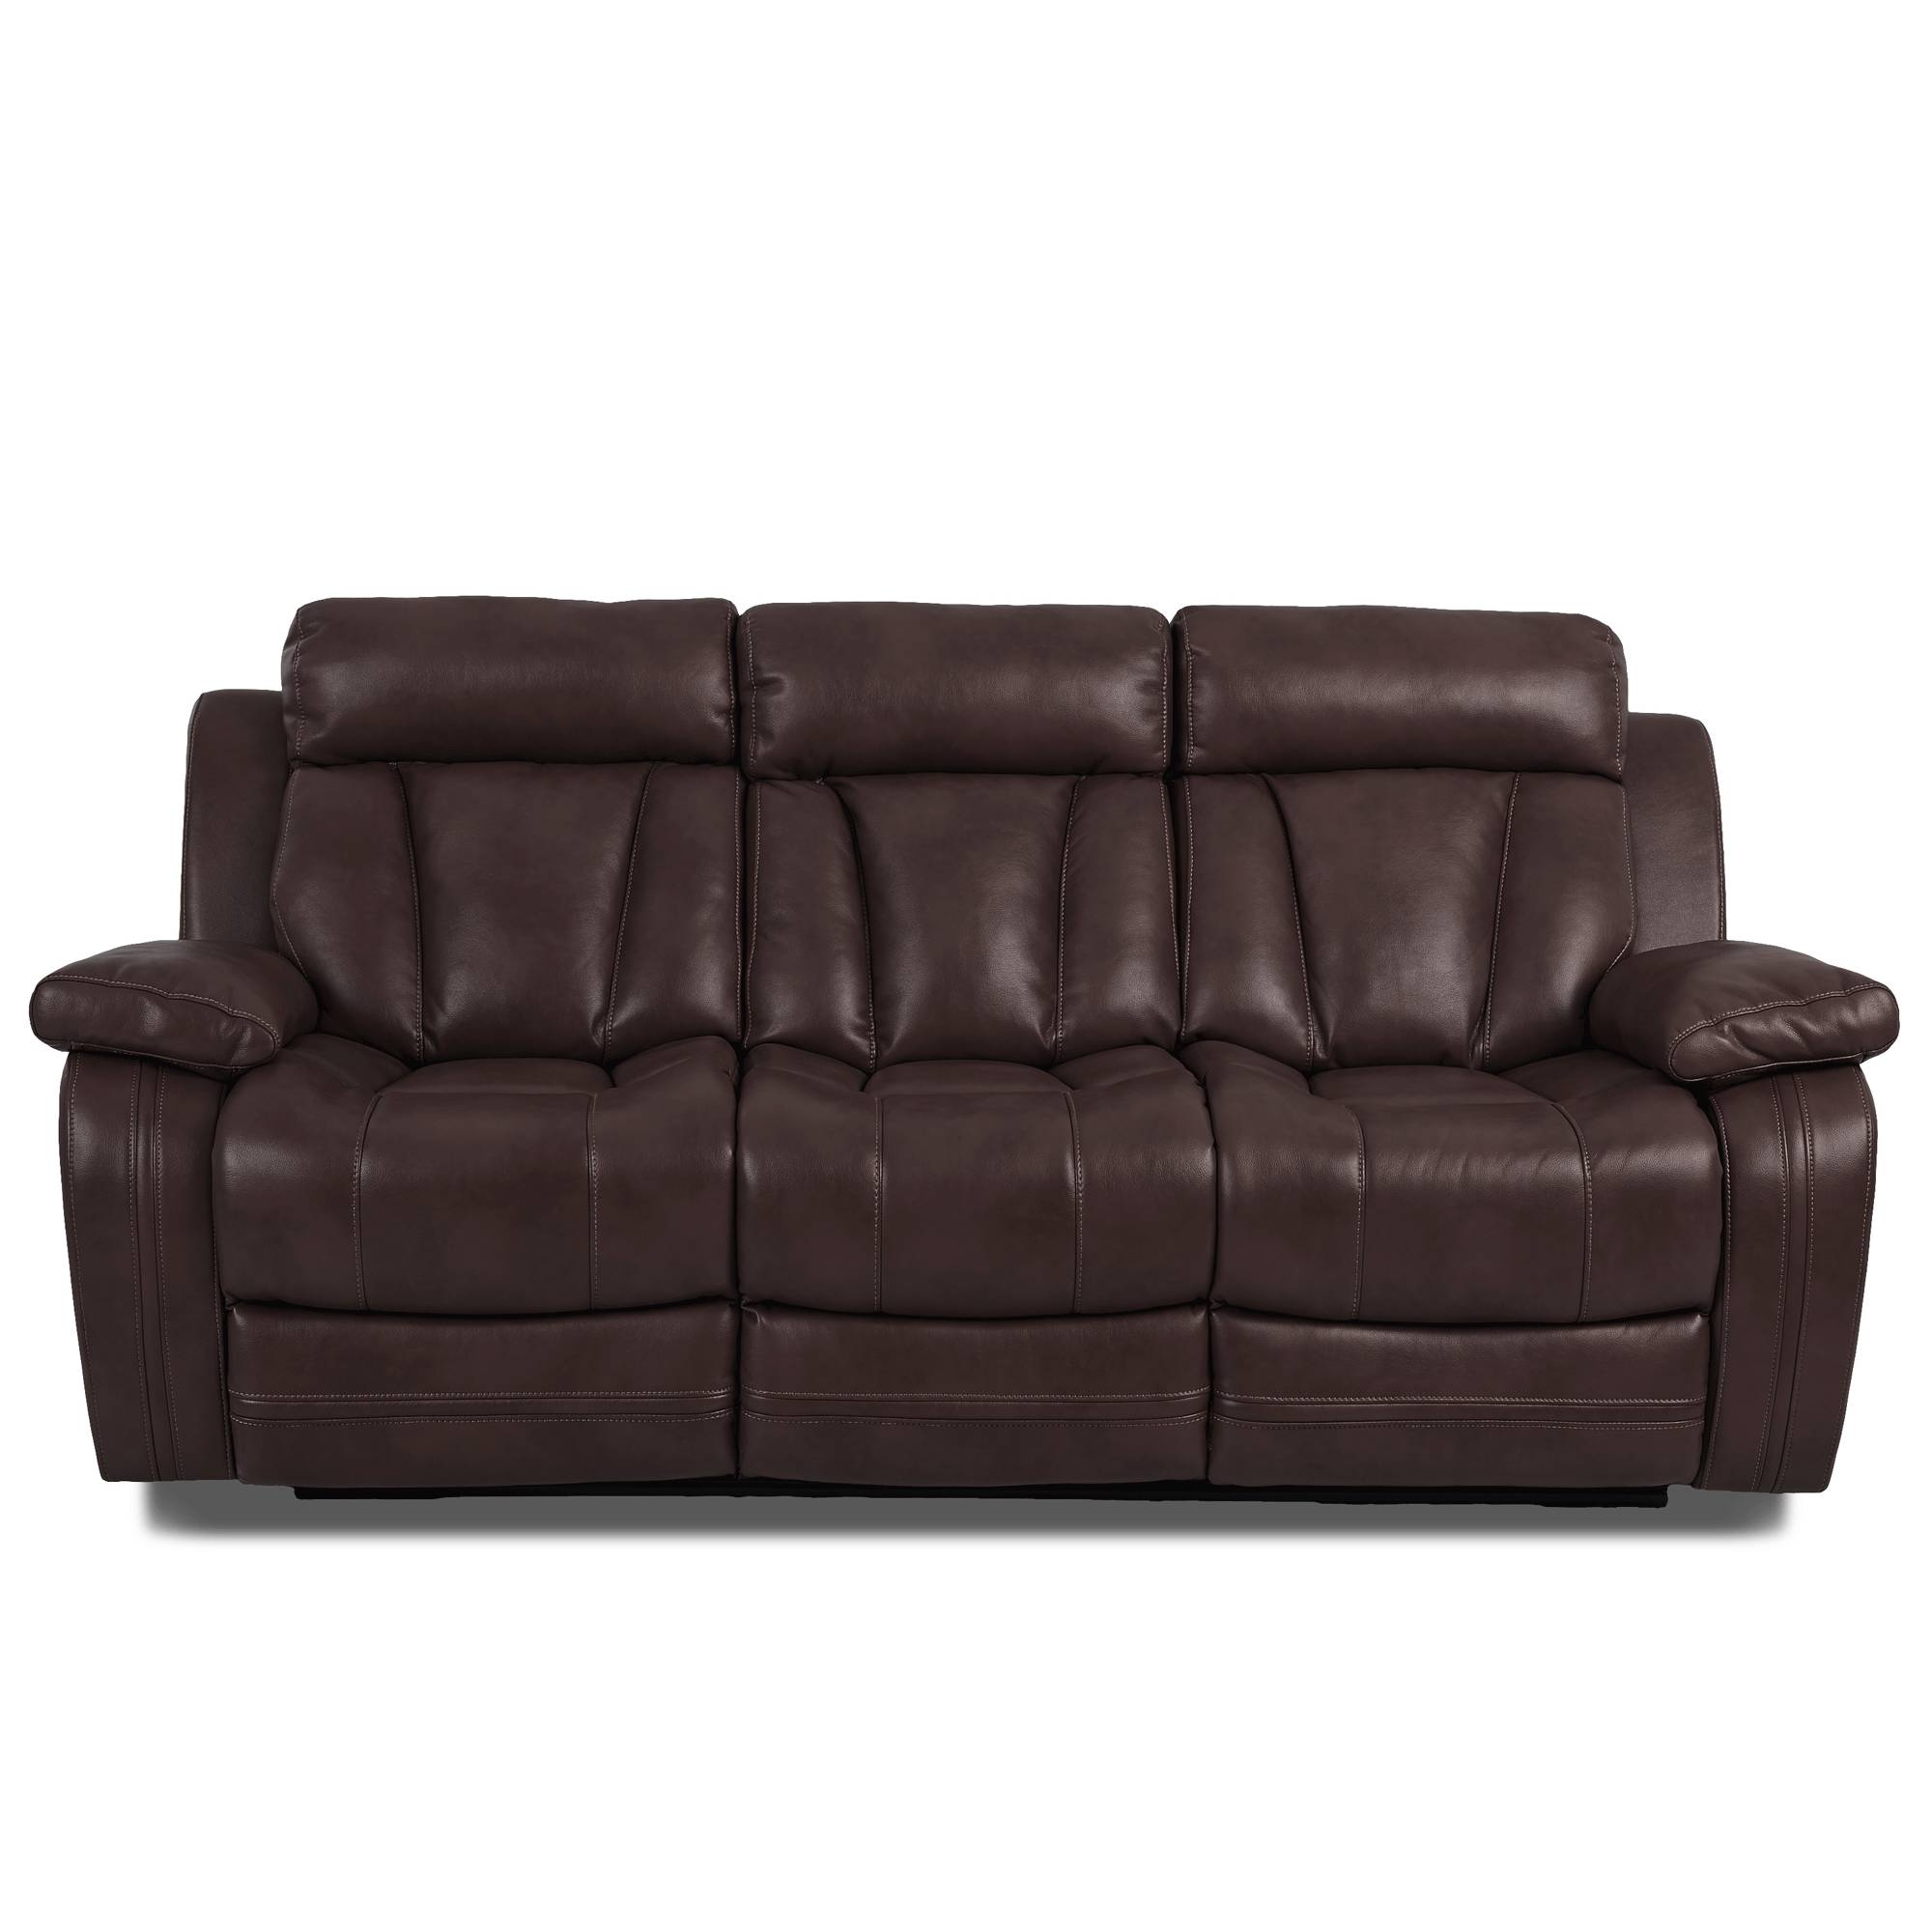 Snuggle Sofa And Swivel Chair Best Decoration Craft 2017  sc 1 st  Brokeasshome.com & Snuggle Sofa Accent Chair | Brokeasshome.com islam-shia.org